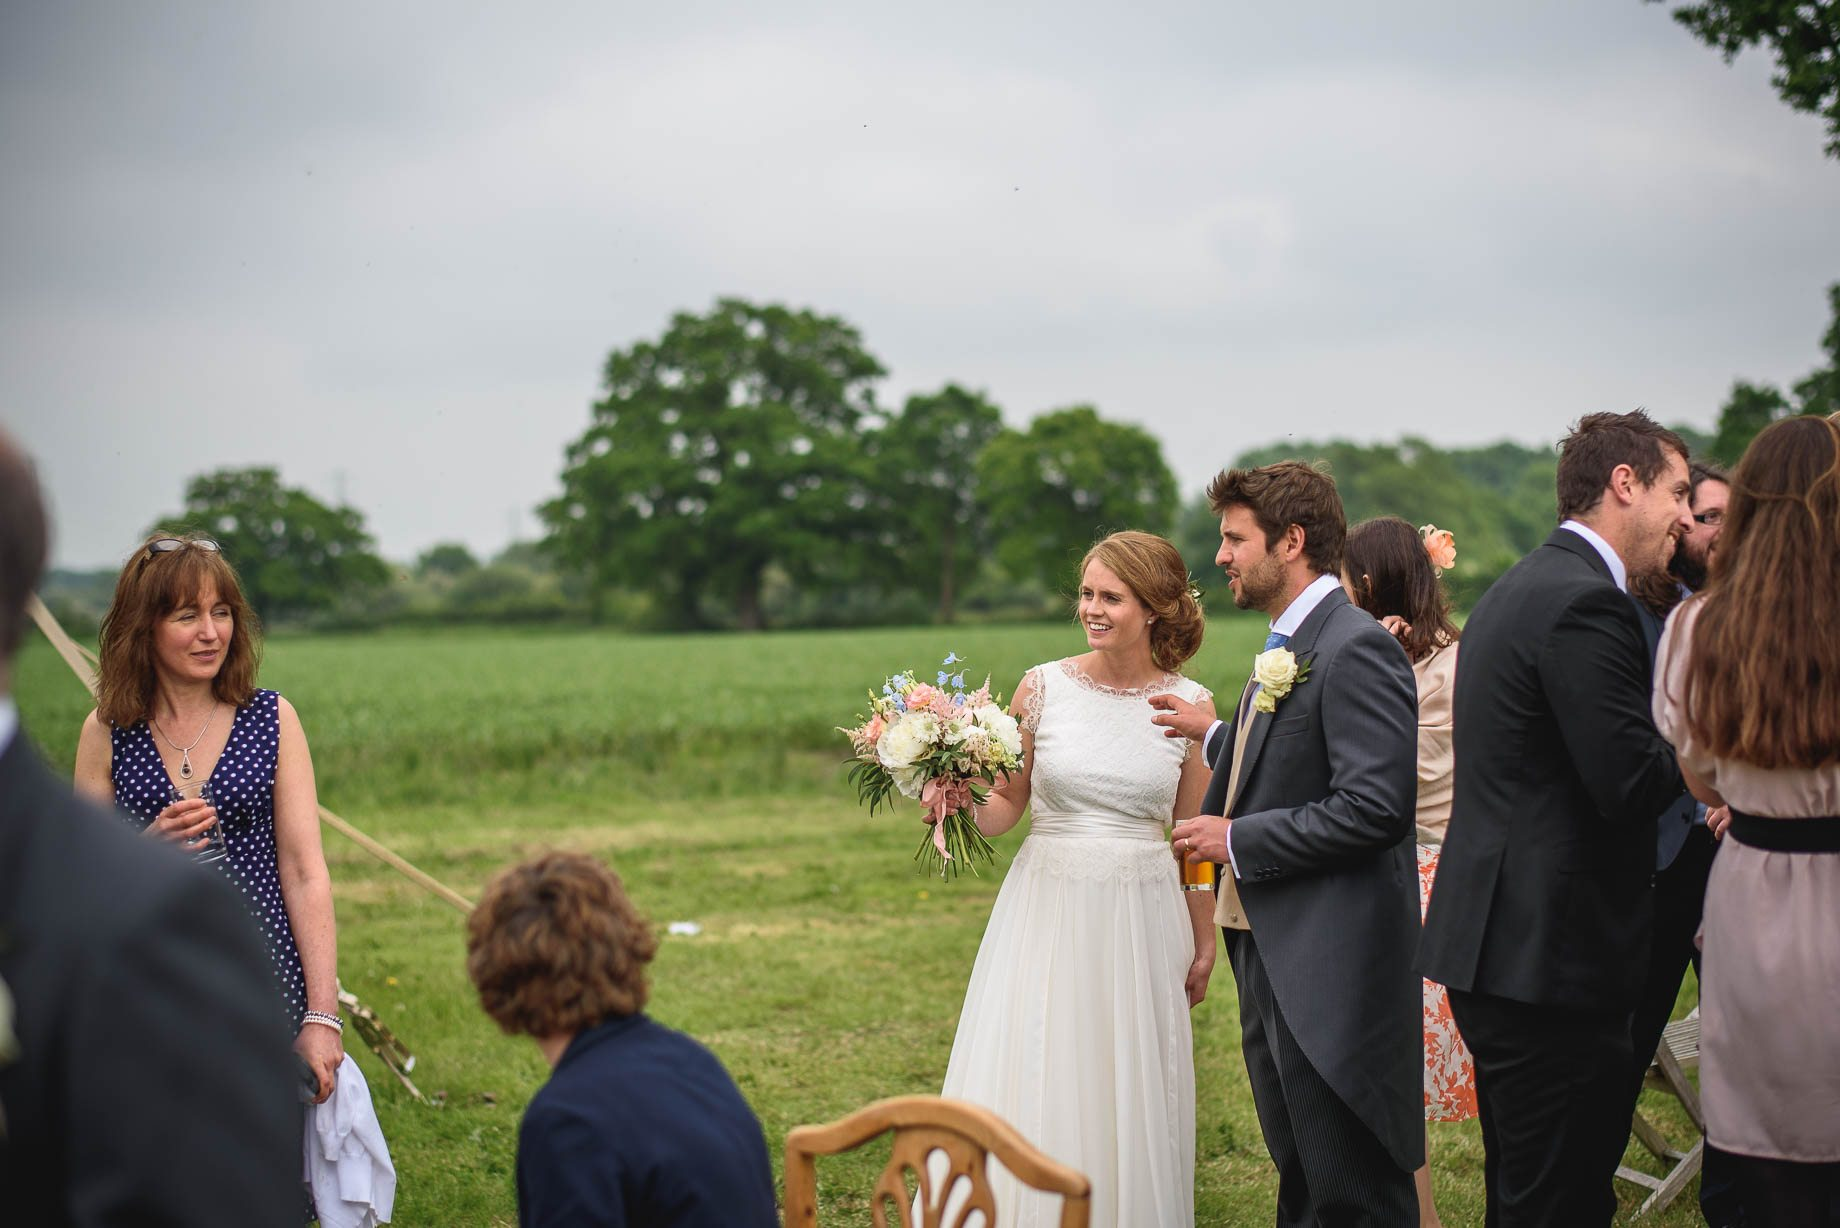 Wiltshire wedding photography by Guy Collier - Lucie and Matt (126 of 198)